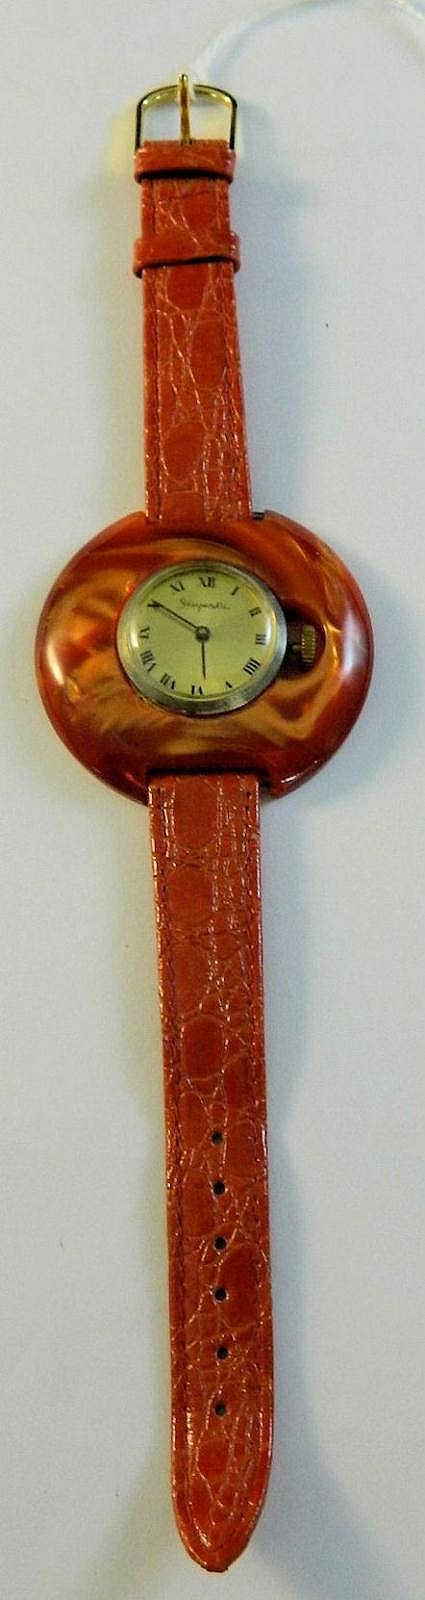 Red Schiaparelli ladies wrist watch